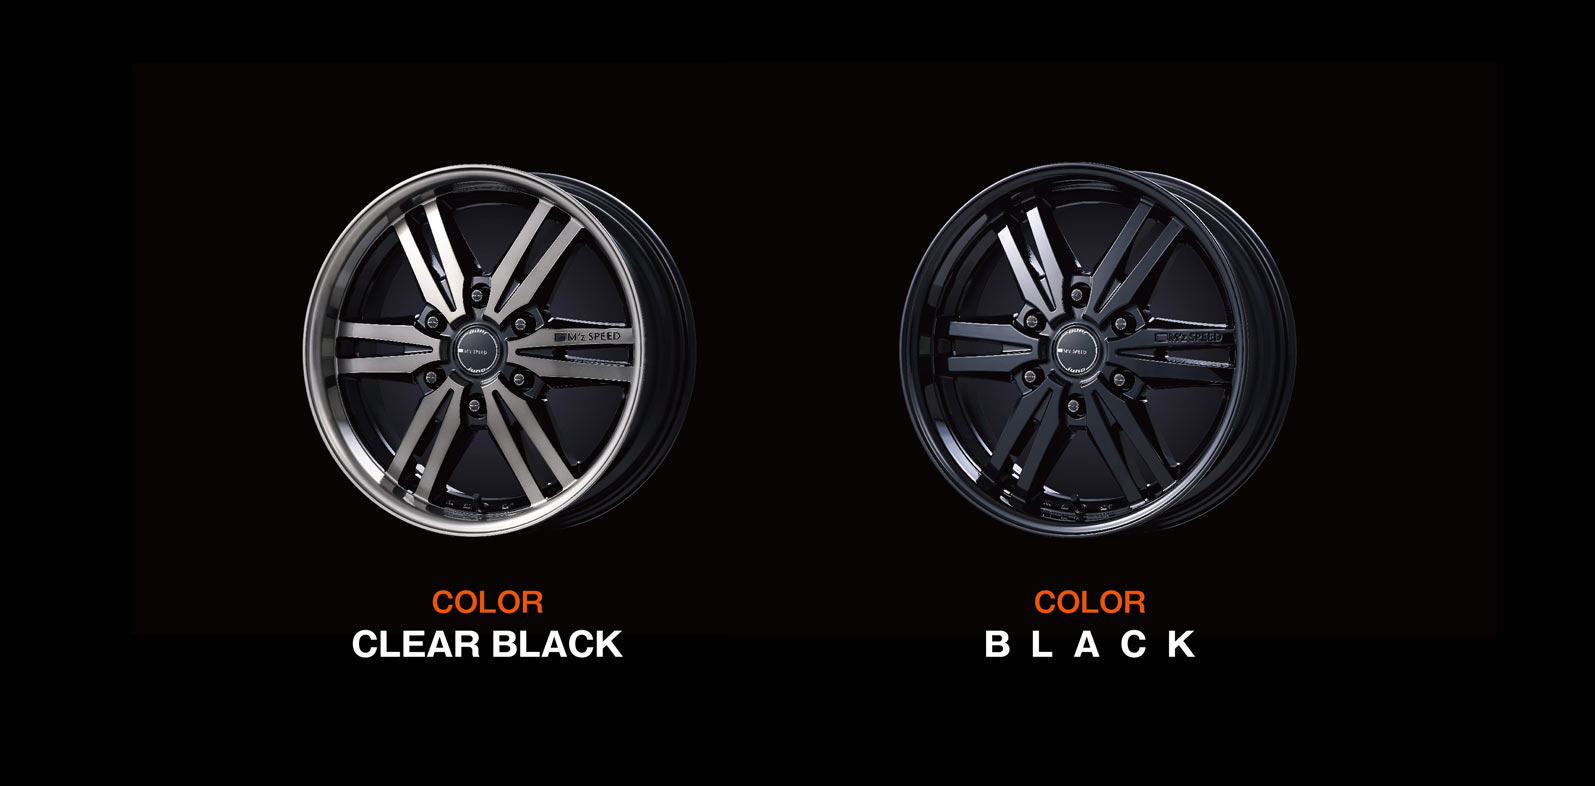 COLOR CLEAR BLACK / COLOR BLACK